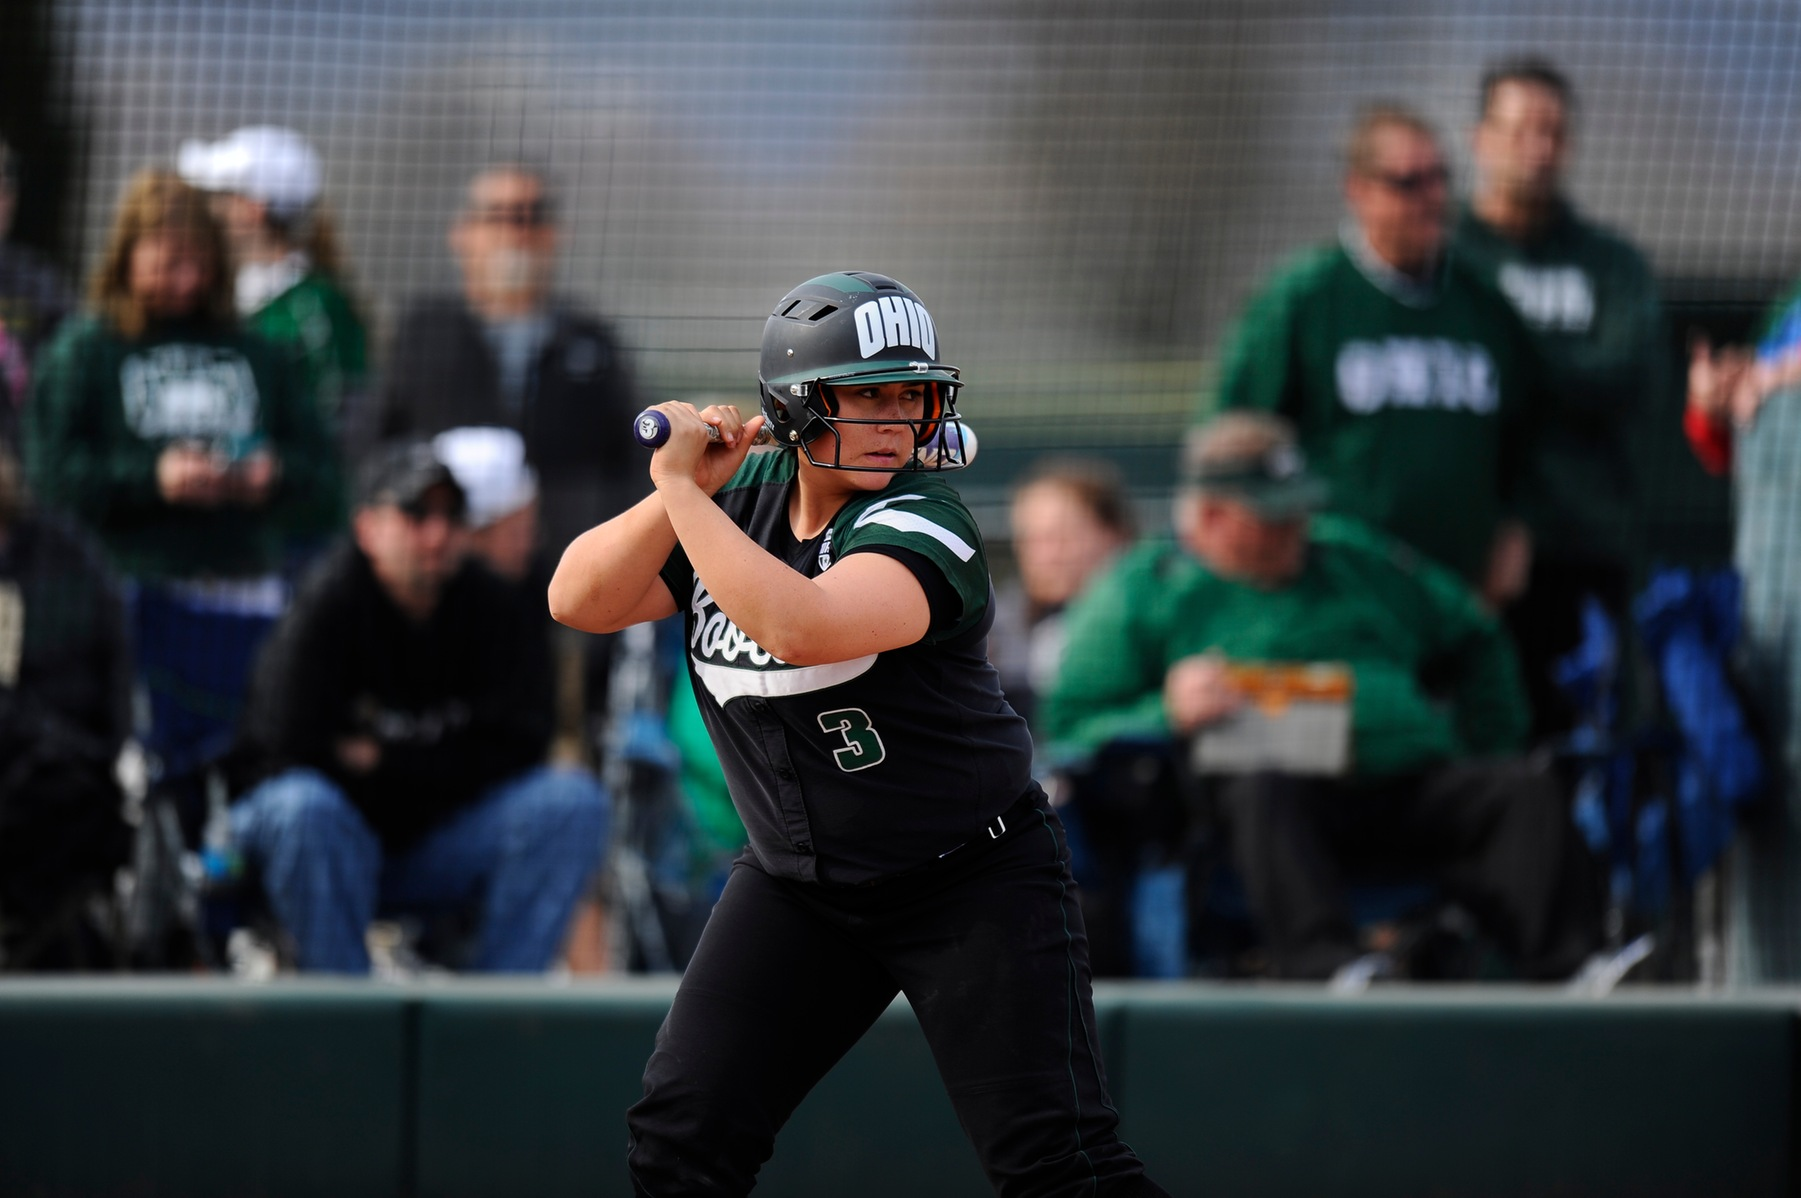 Ohio Softball Offense Comes Alive, Downs Stony Brook 10-3